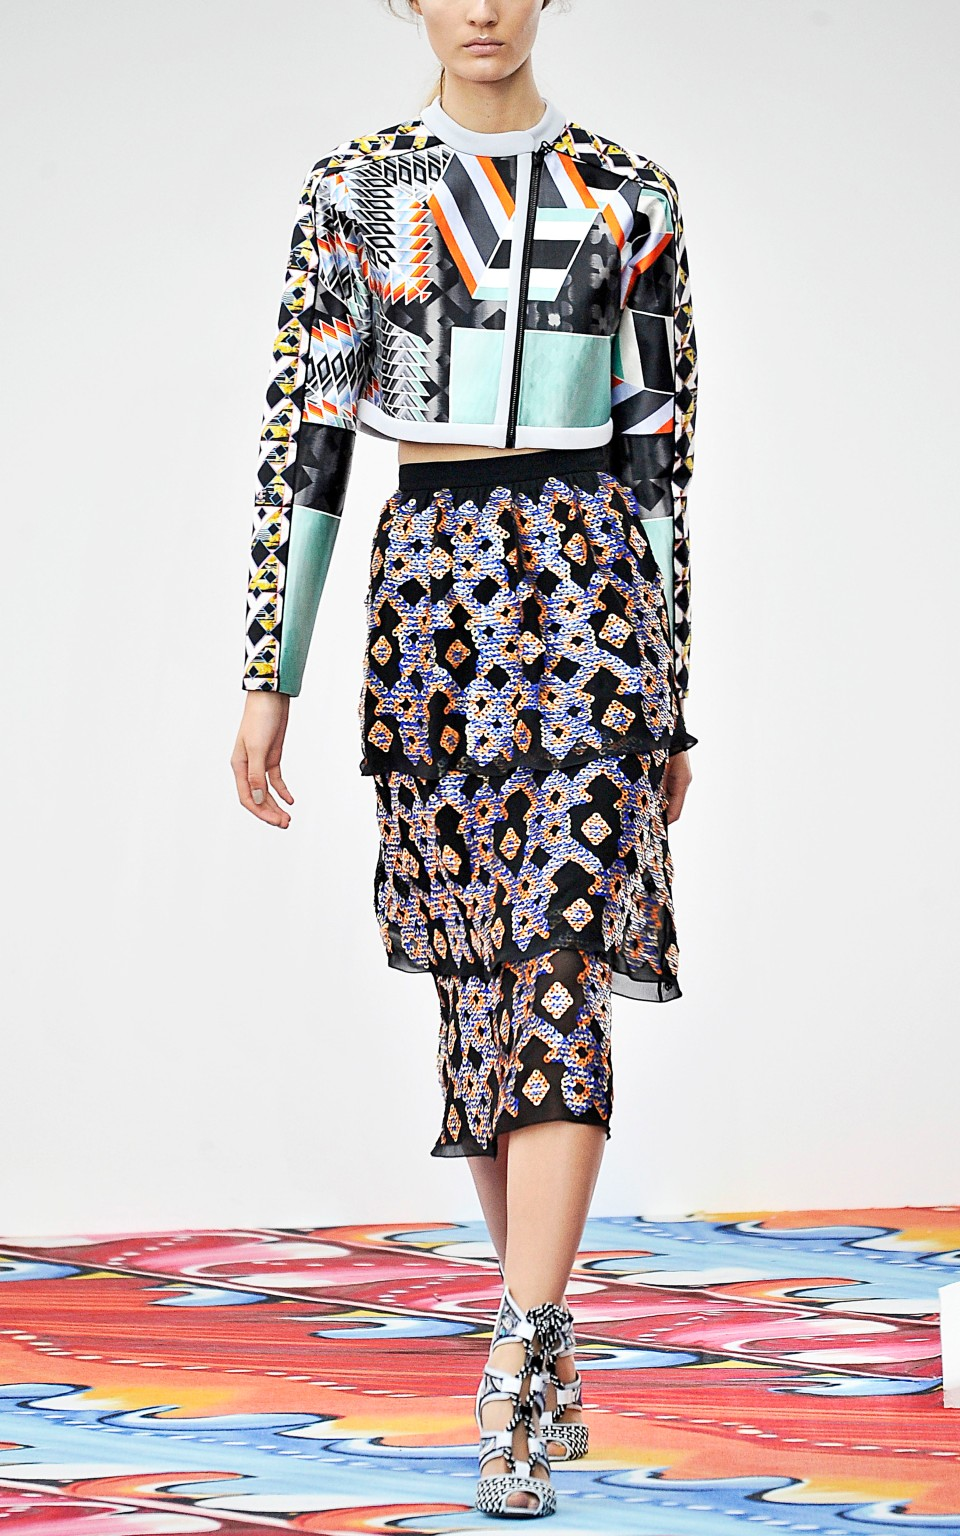 RTW_Peter_Pilotto_Spring_Summer_2013_London_Fashion_Week_September_2012